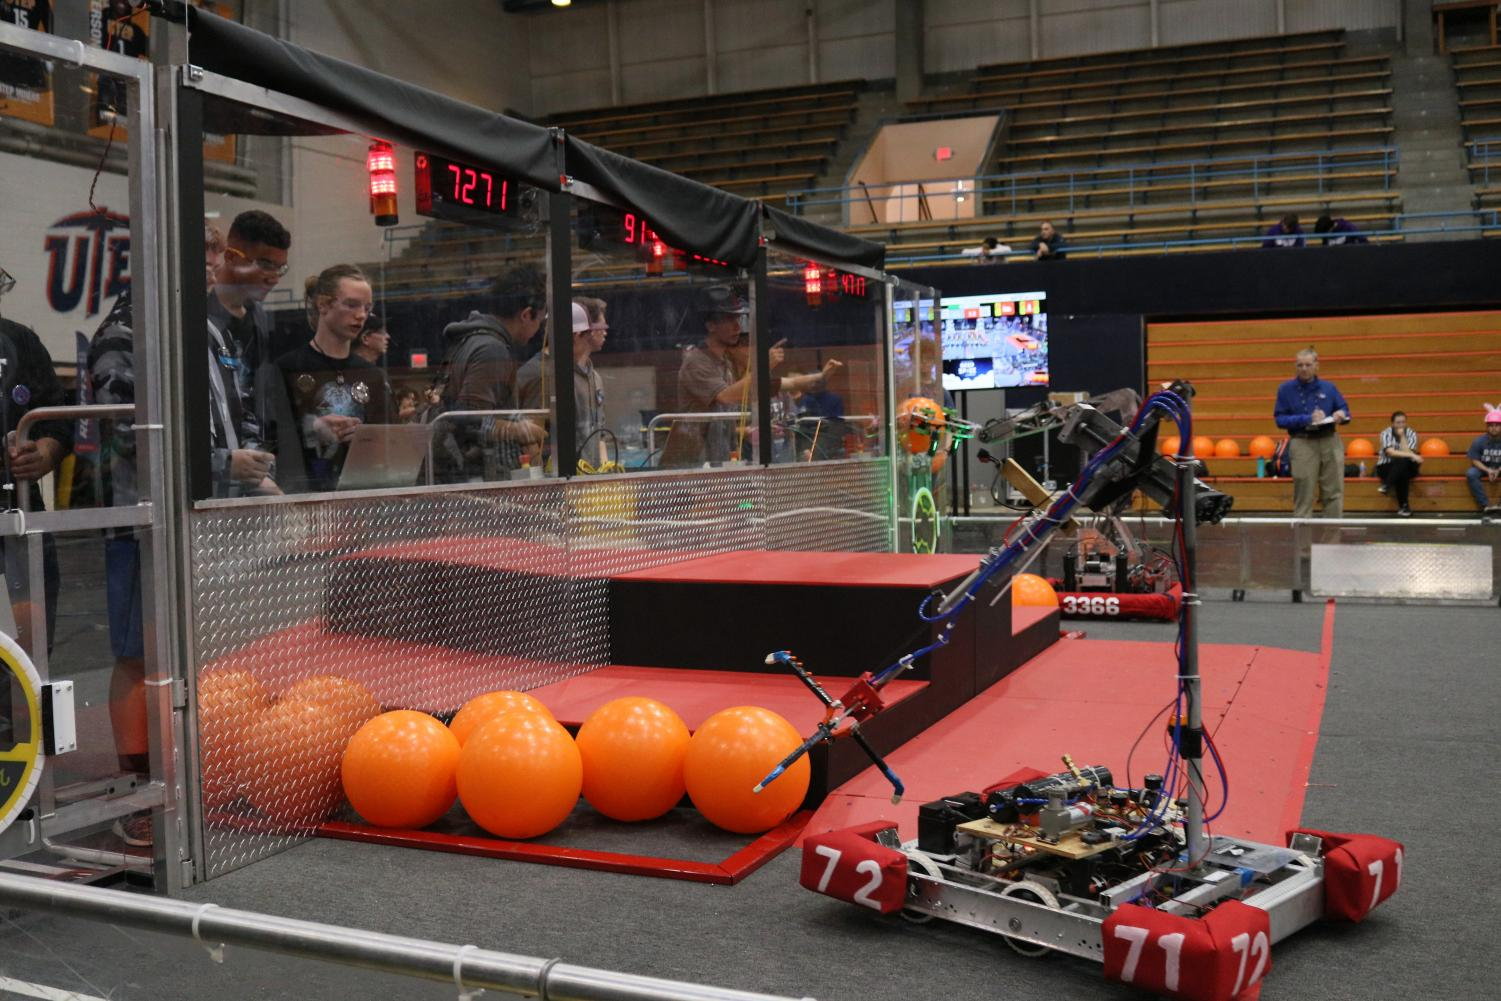 Robot+carries+a+ball+during+the+Robotic+Competition+in+Memorial+Gym+at+the+University+of+Texas+at+El+Paso%2C+Saturday%2C+March+2%2C+2019.